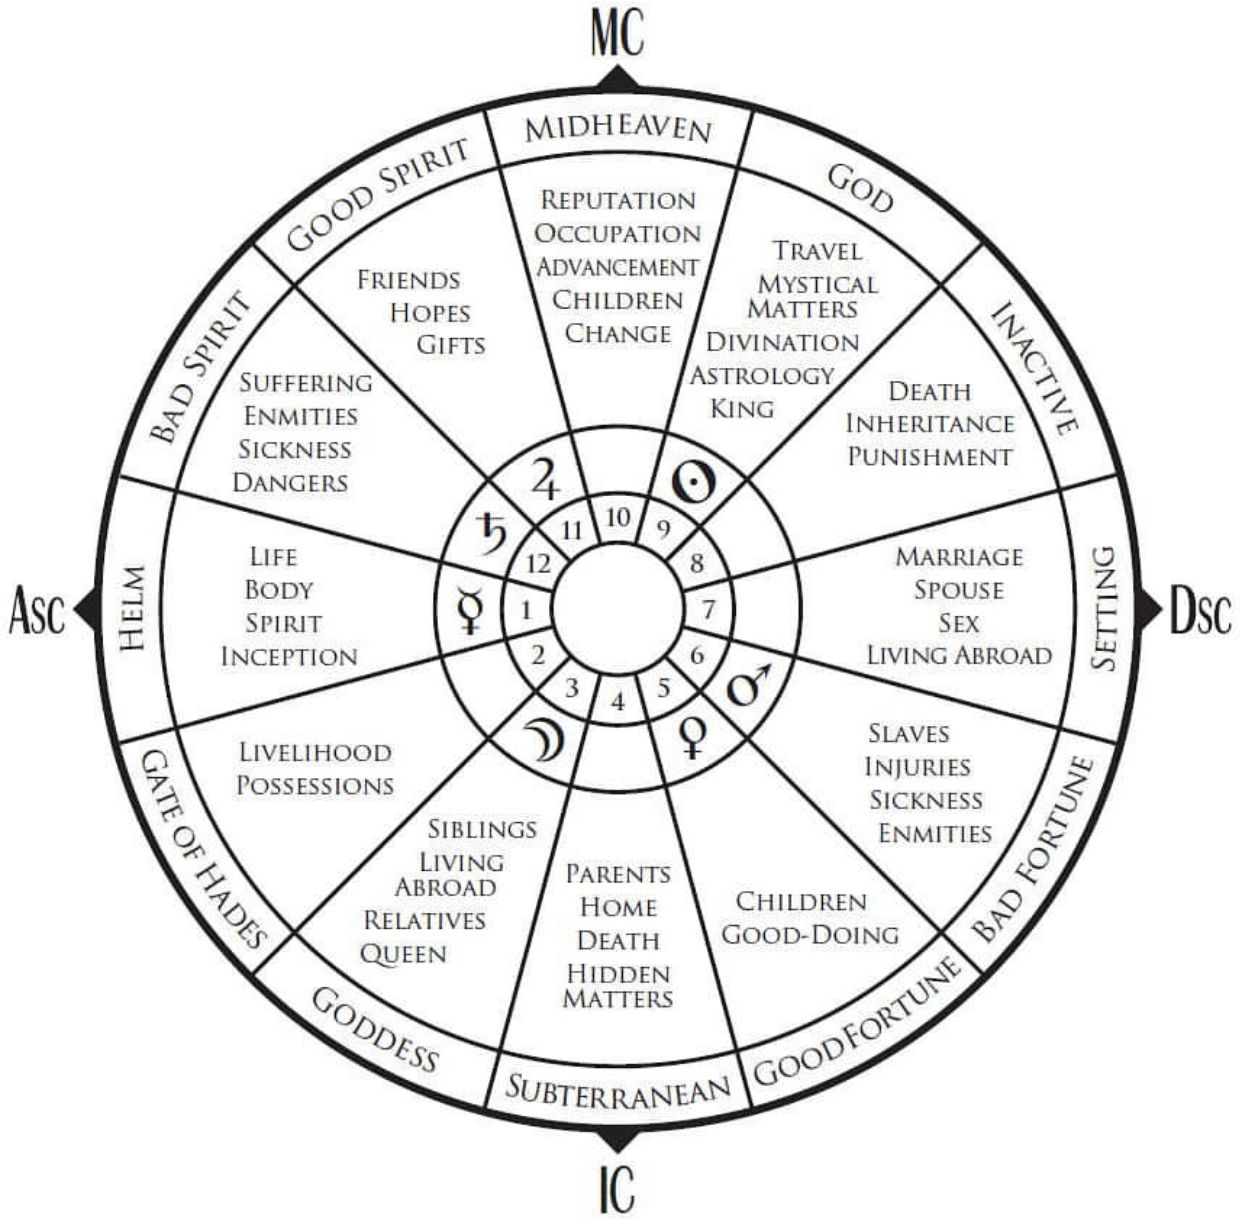 Pin by MASTER THERION on Astrology in 2020 Hope gifts